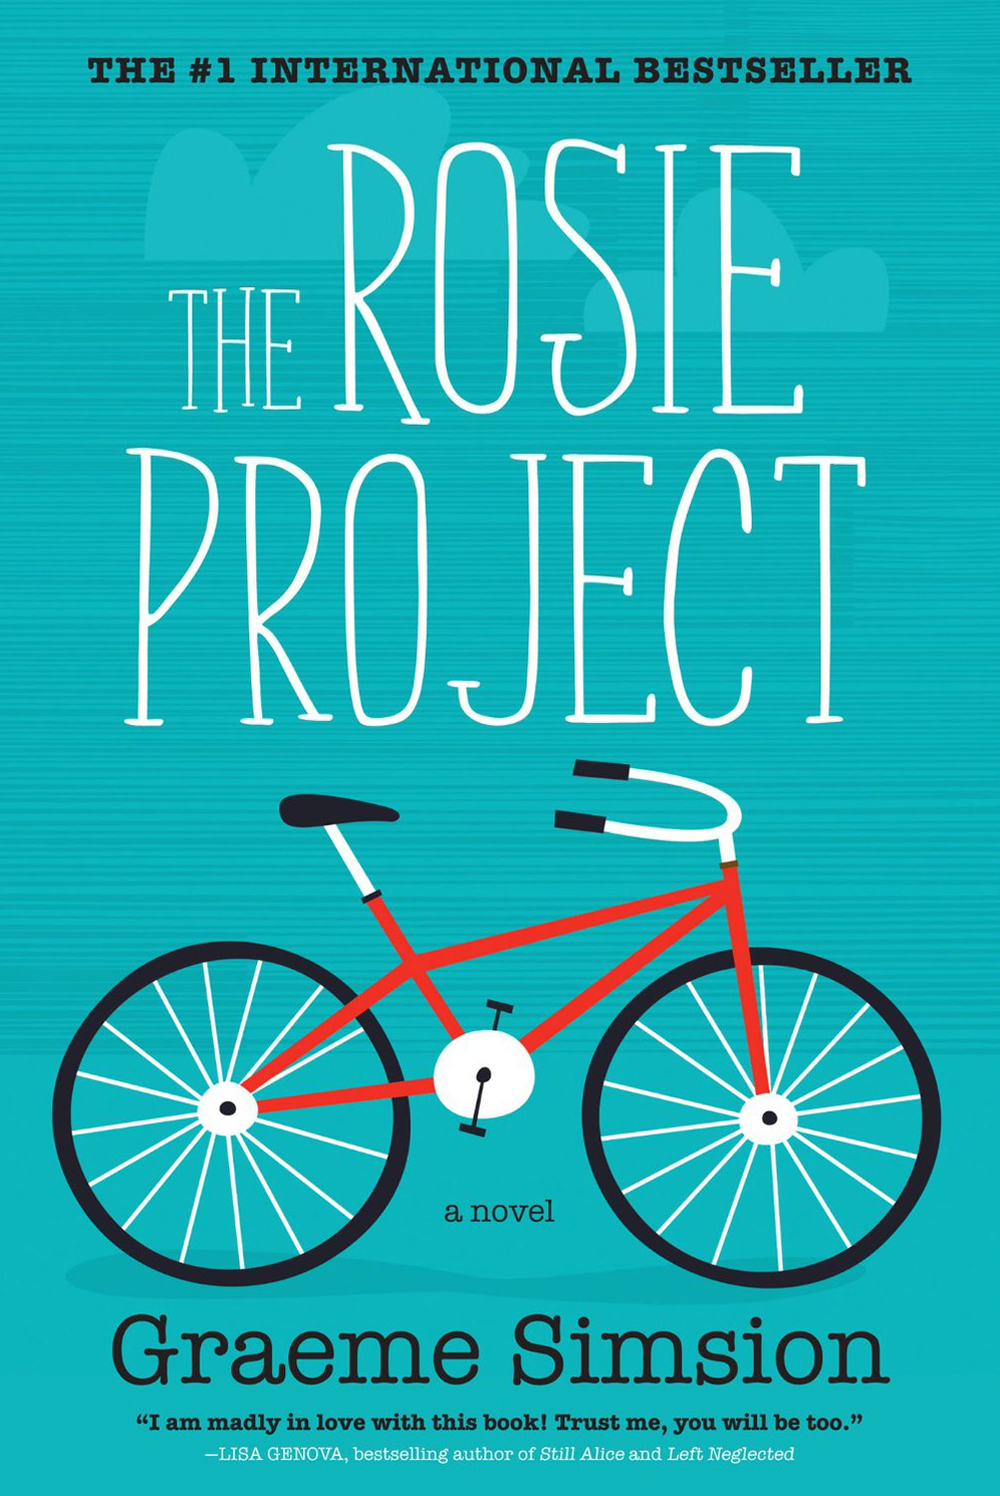 Rosie-Project-book.jpg